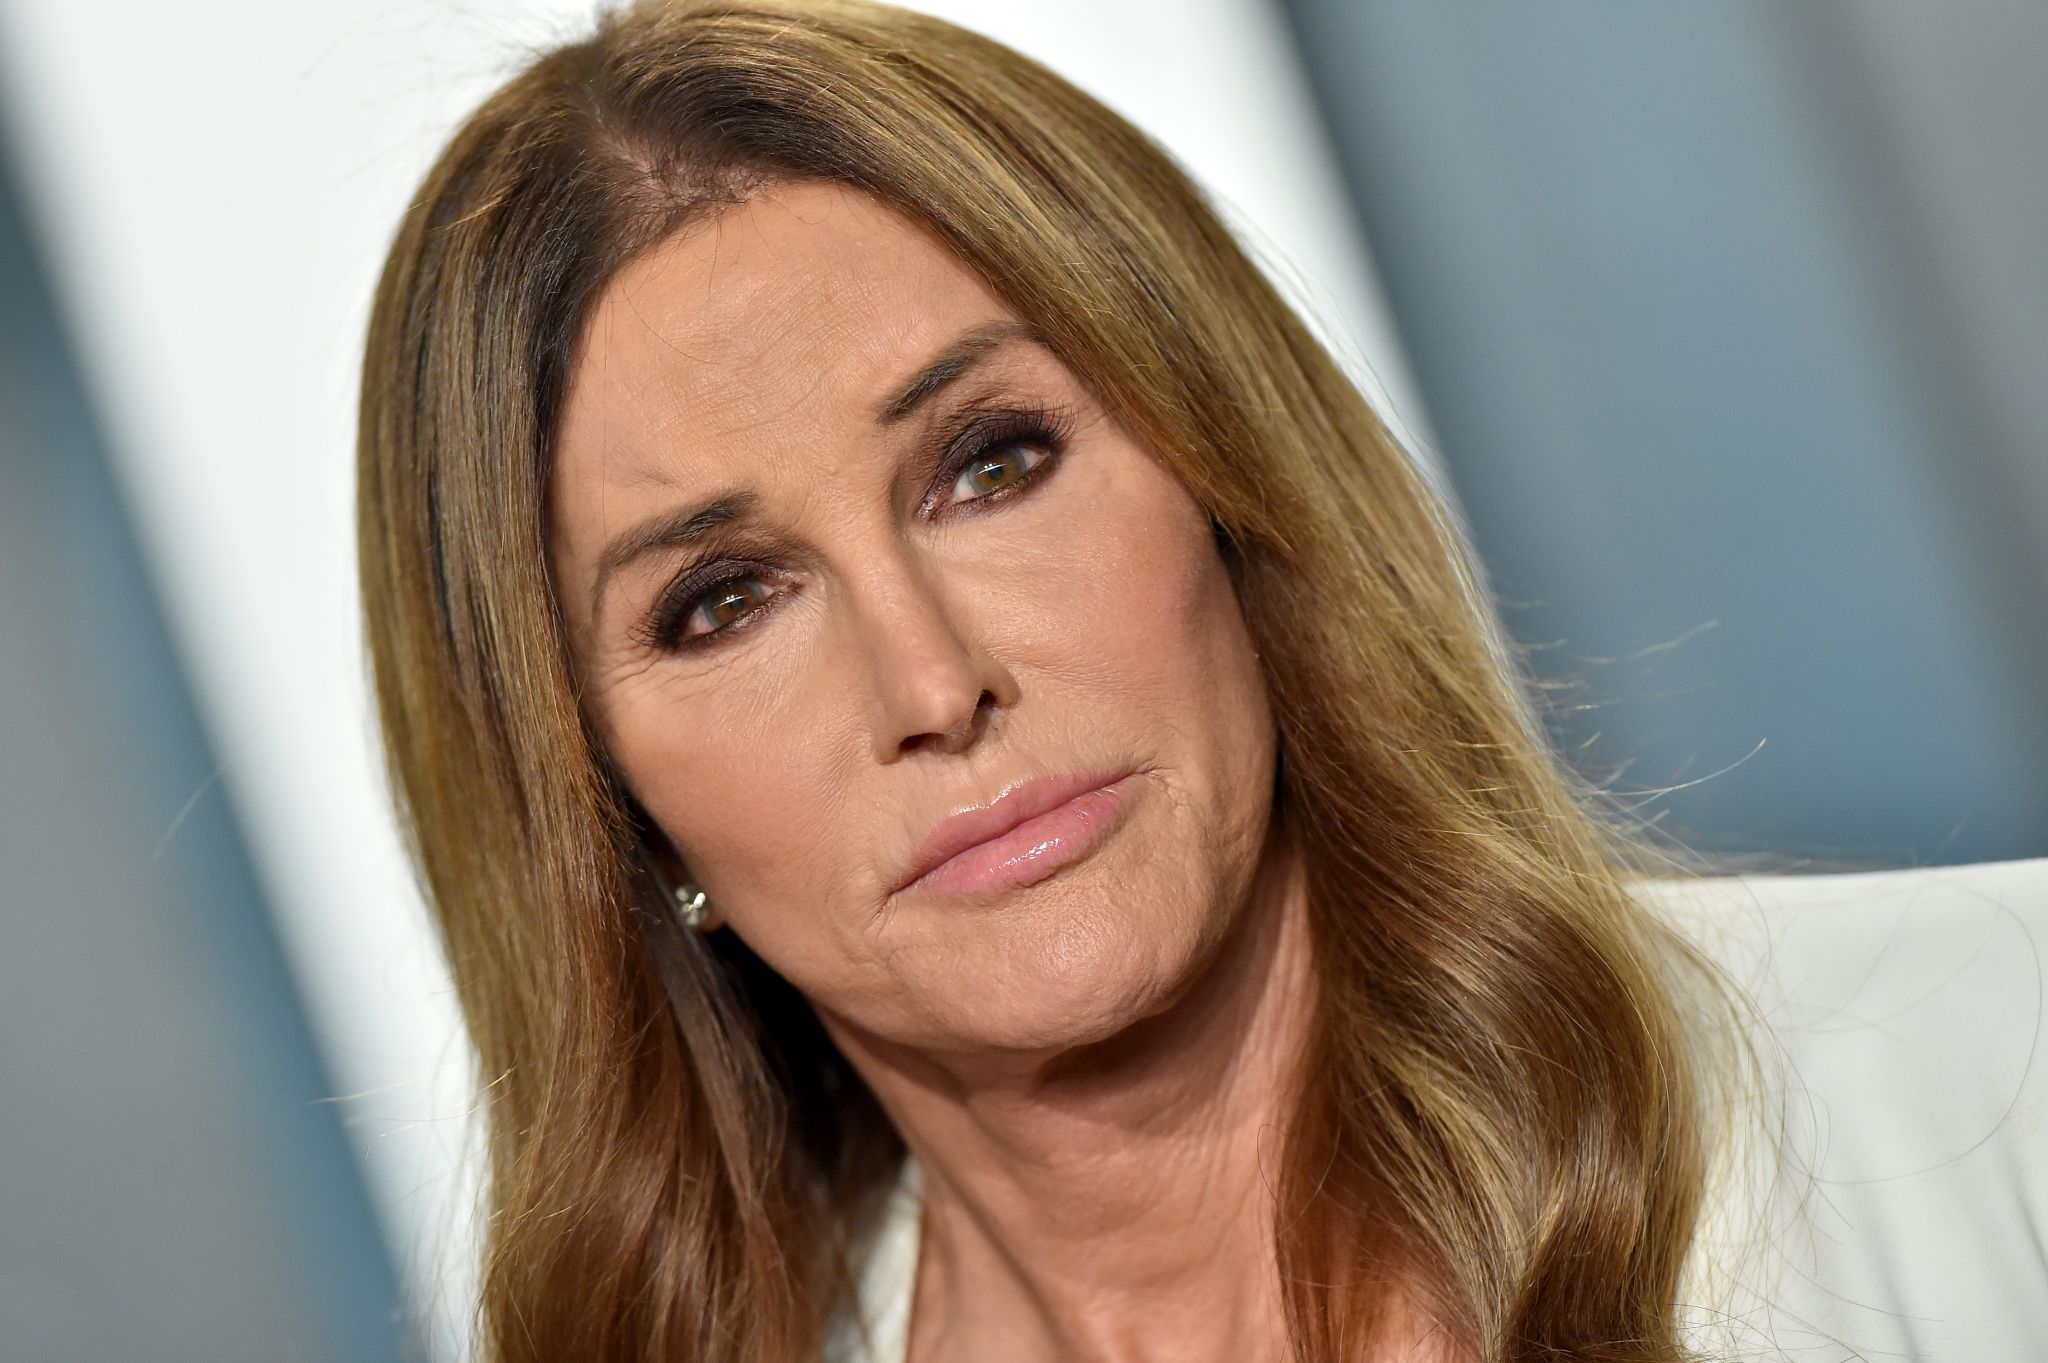 Caitlyn Jenner is officially running for California governor